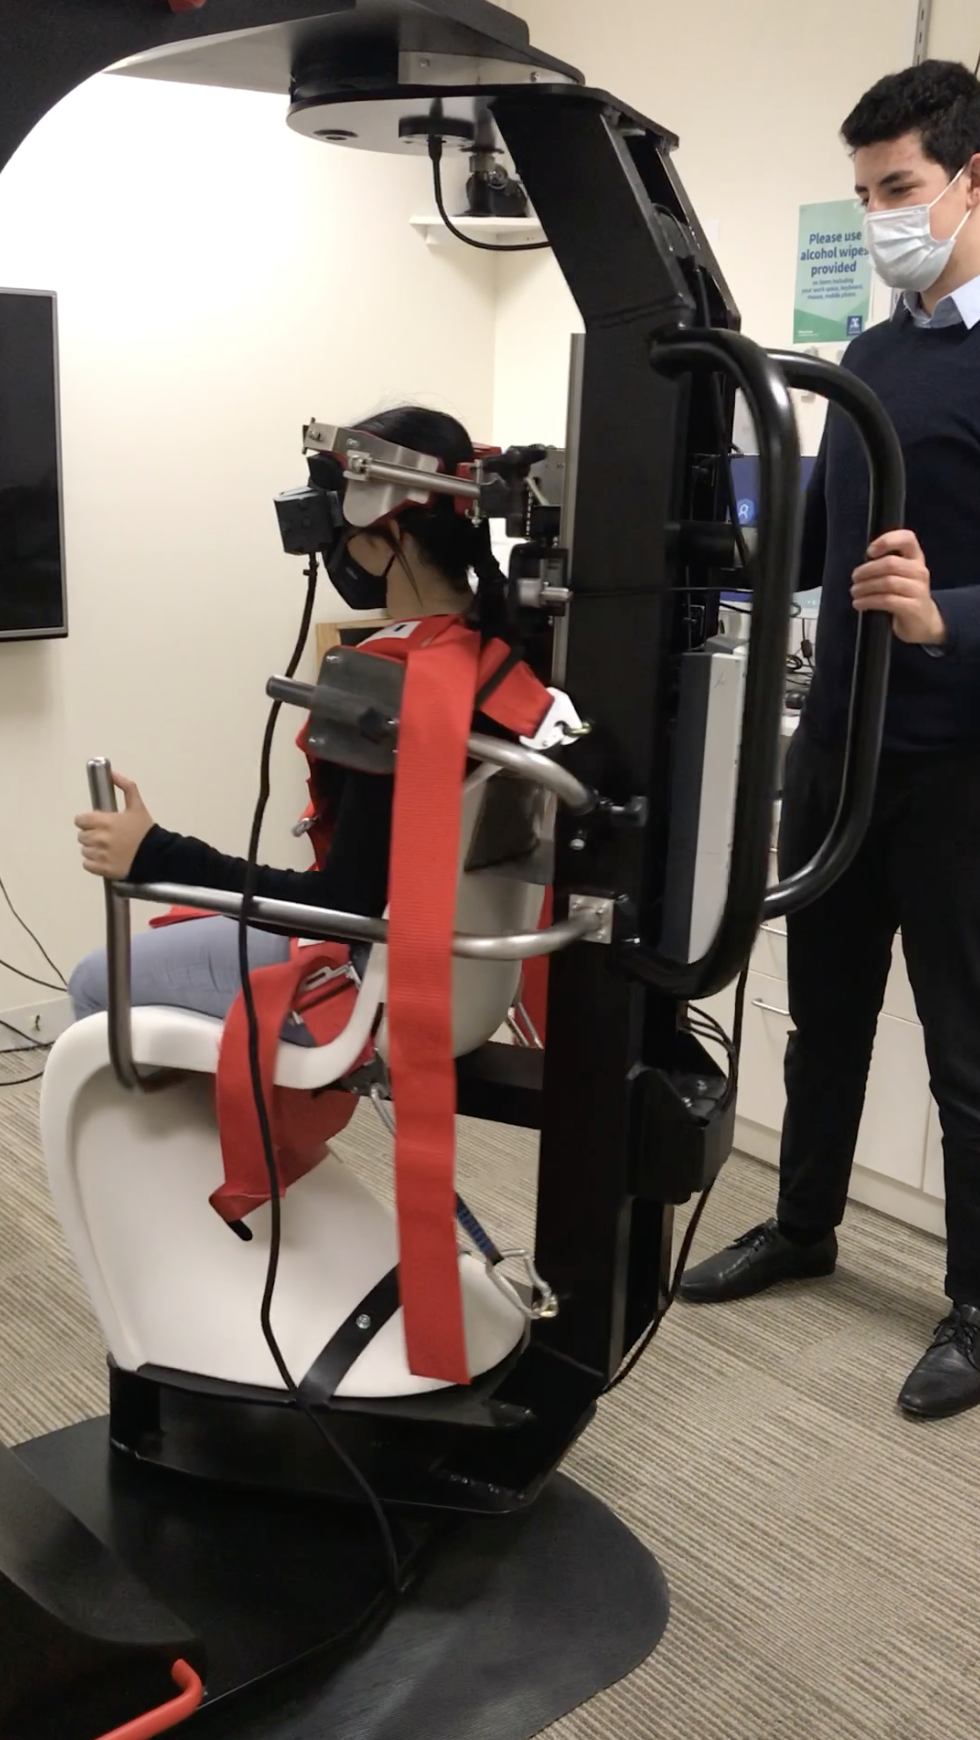 Patient using omnidirectional chair used to diagnose balance issues.